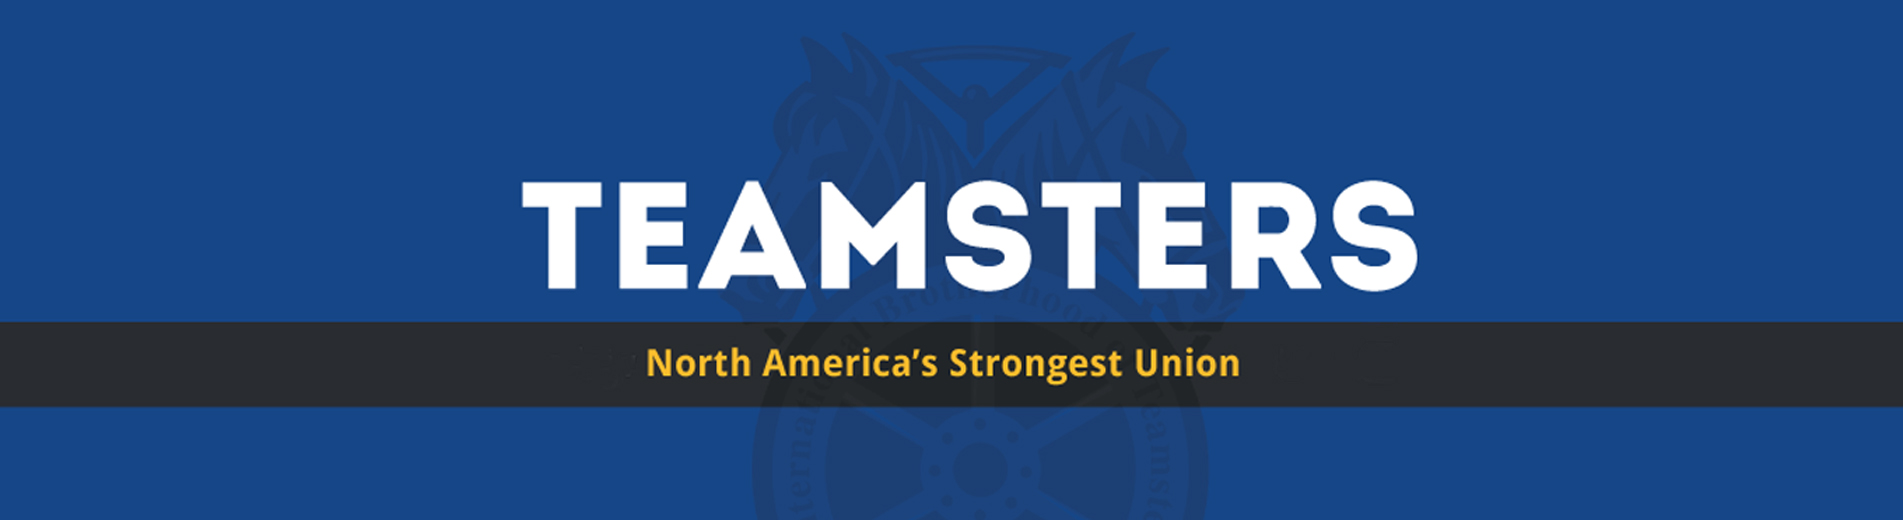 Teamsters - Supply Chain 24/7 Company